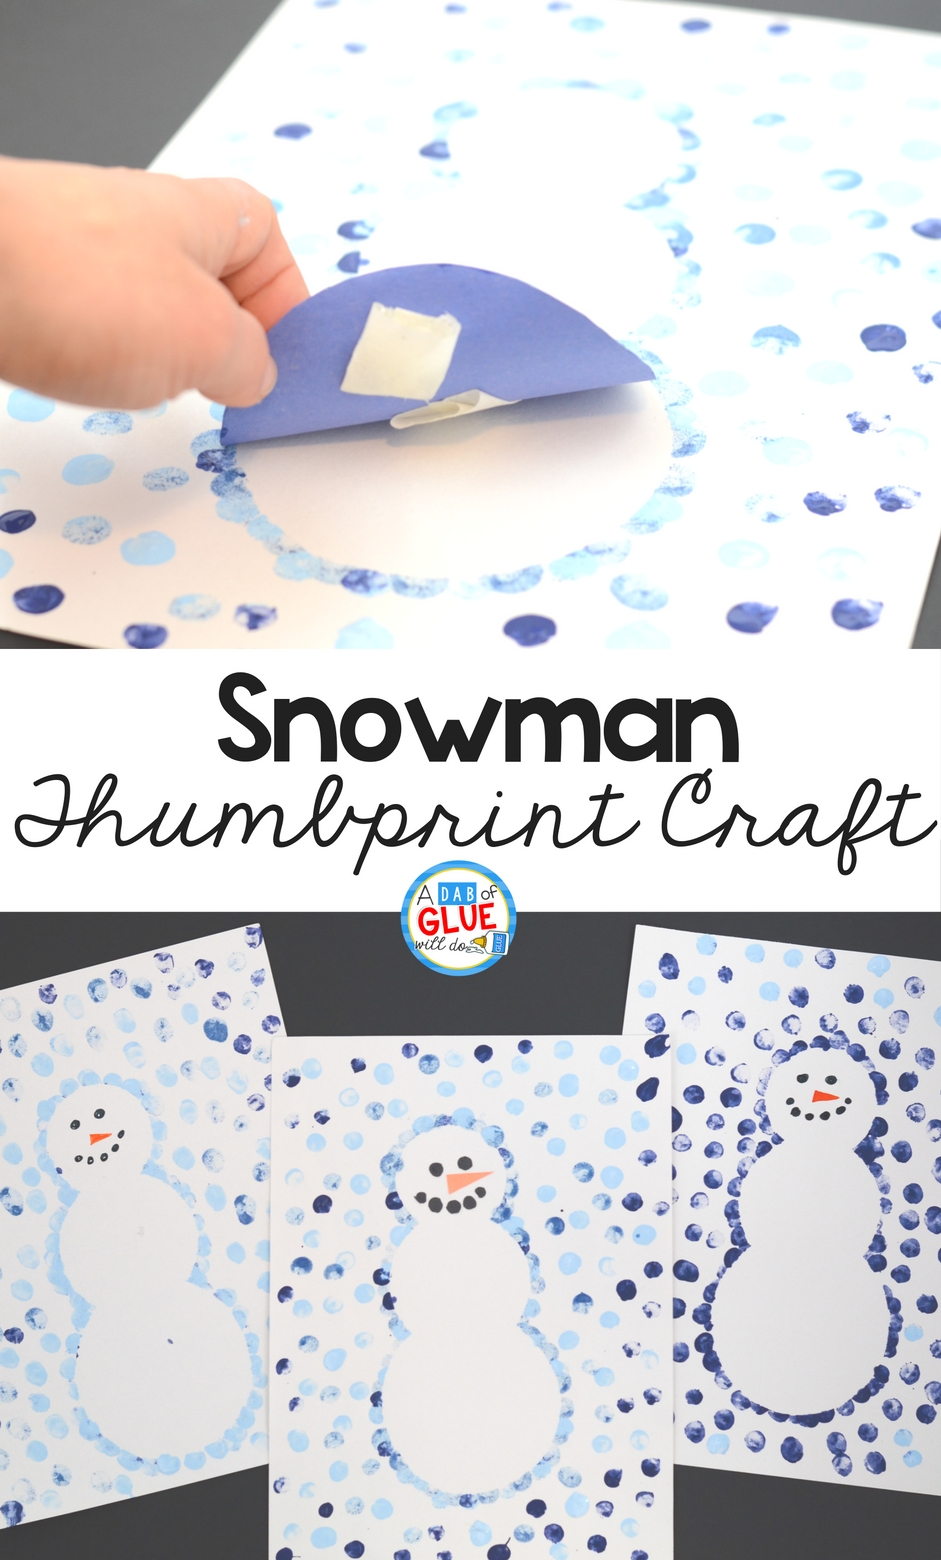 Snowman Thumbprint Art Craft For Kids In The Winter Classroom